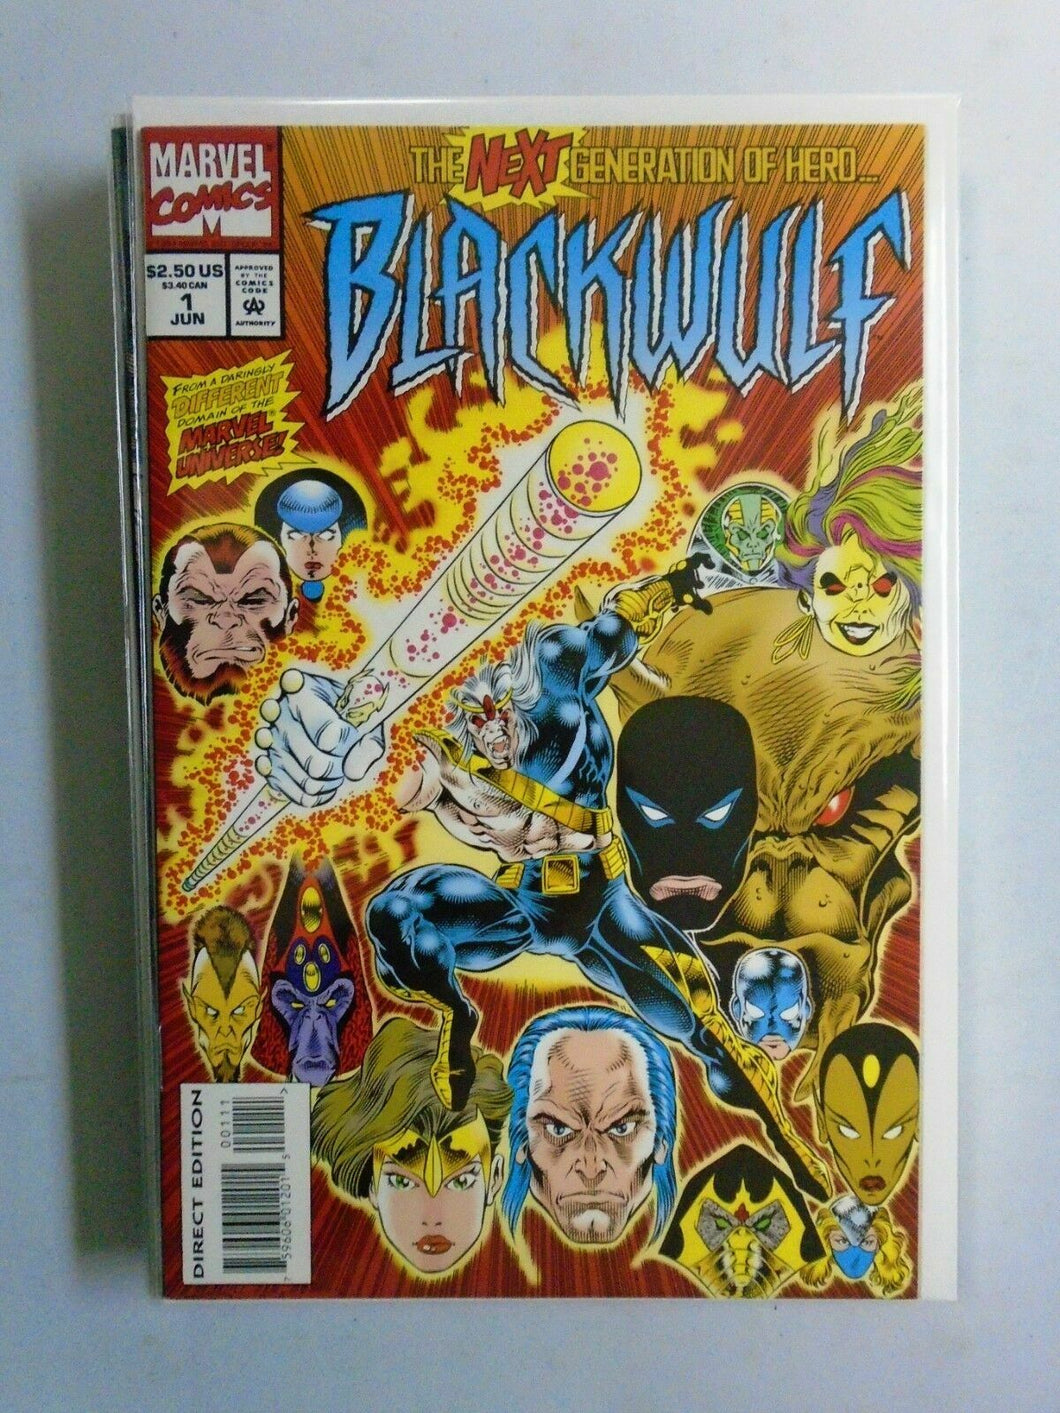 Blackwulf, Set:#1-10 Average 8.0/VF (1994)